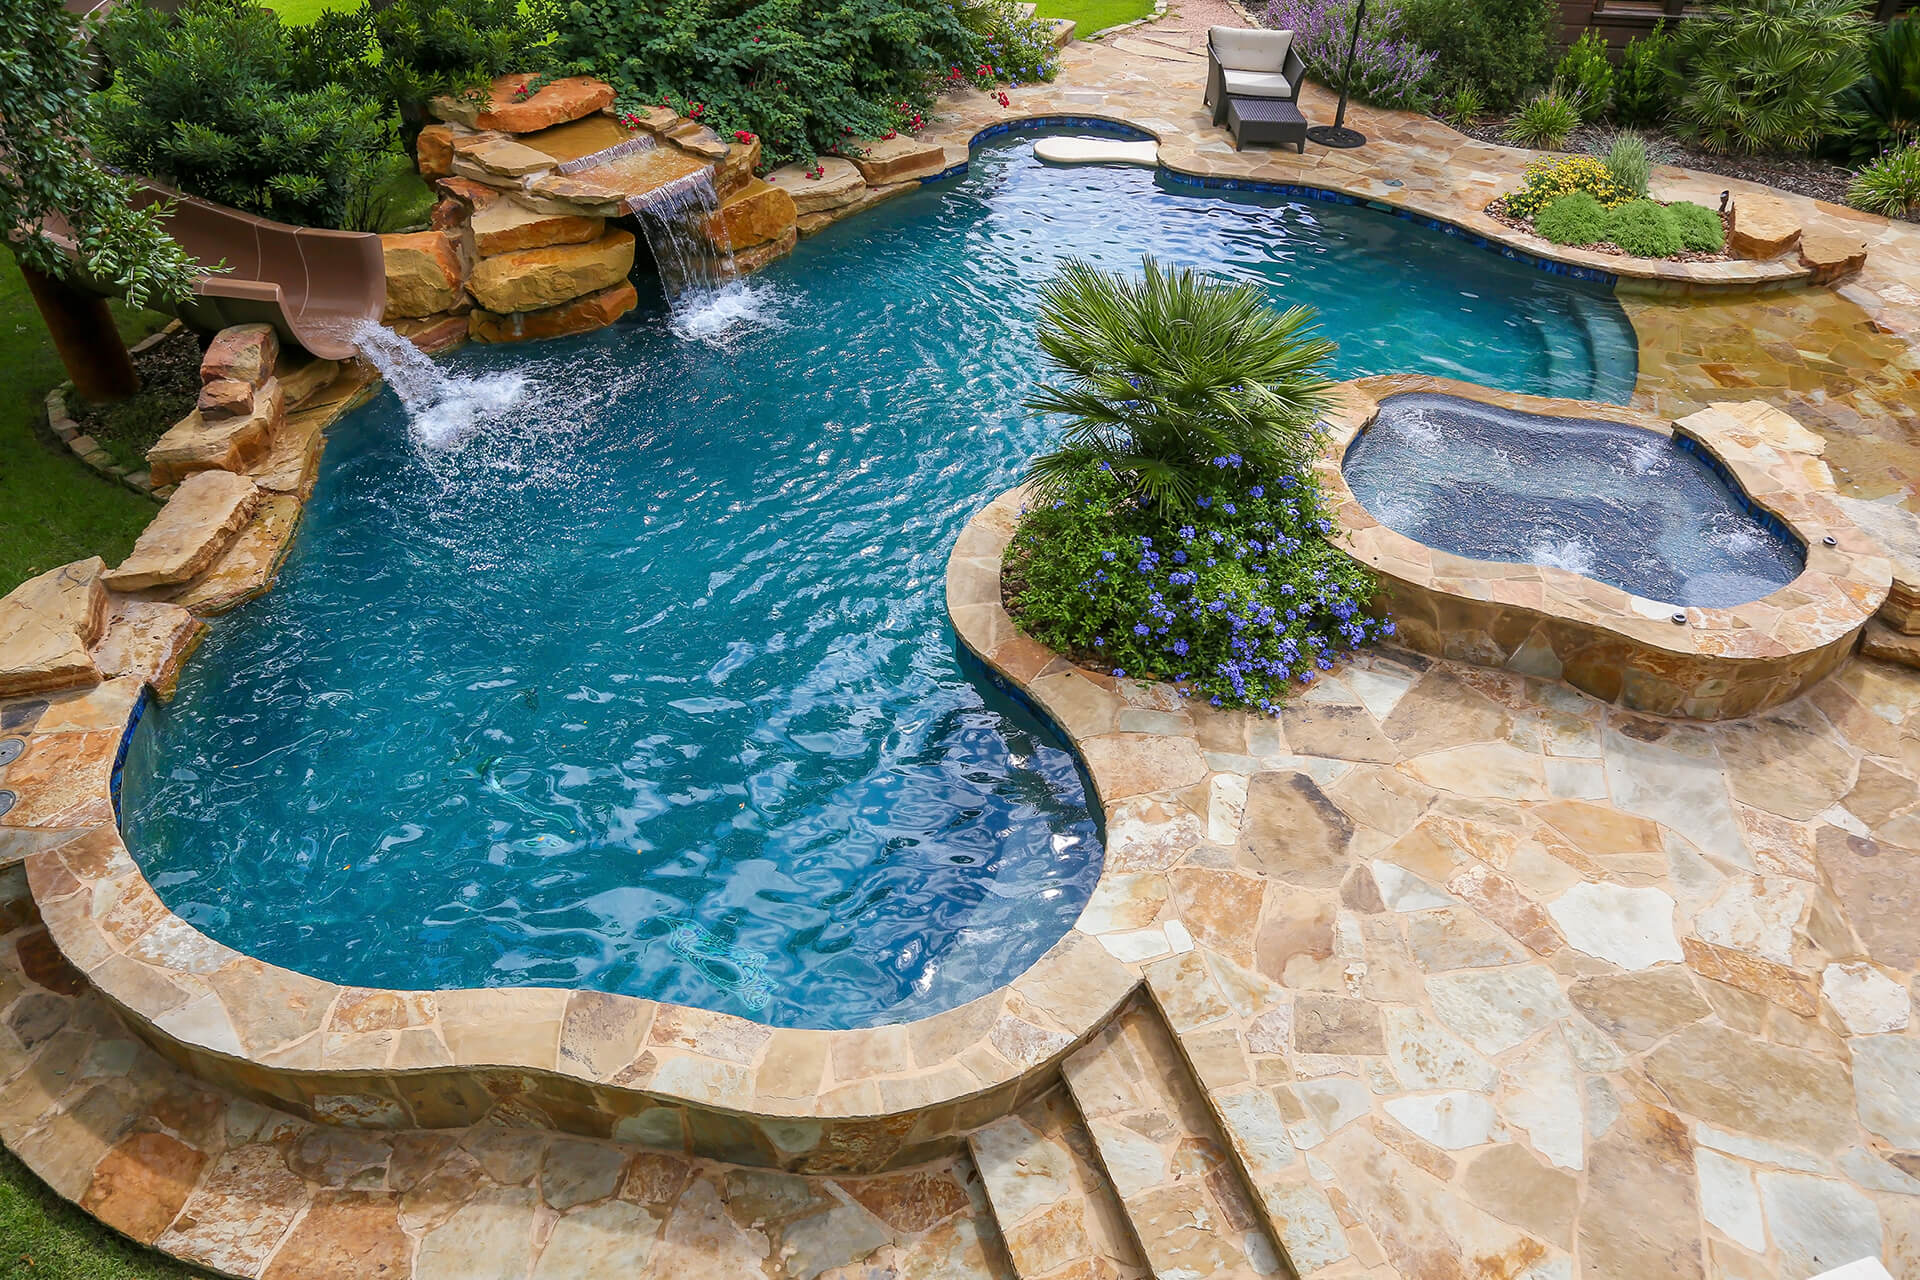 #4 Pool Contractor in America - Keith Zars